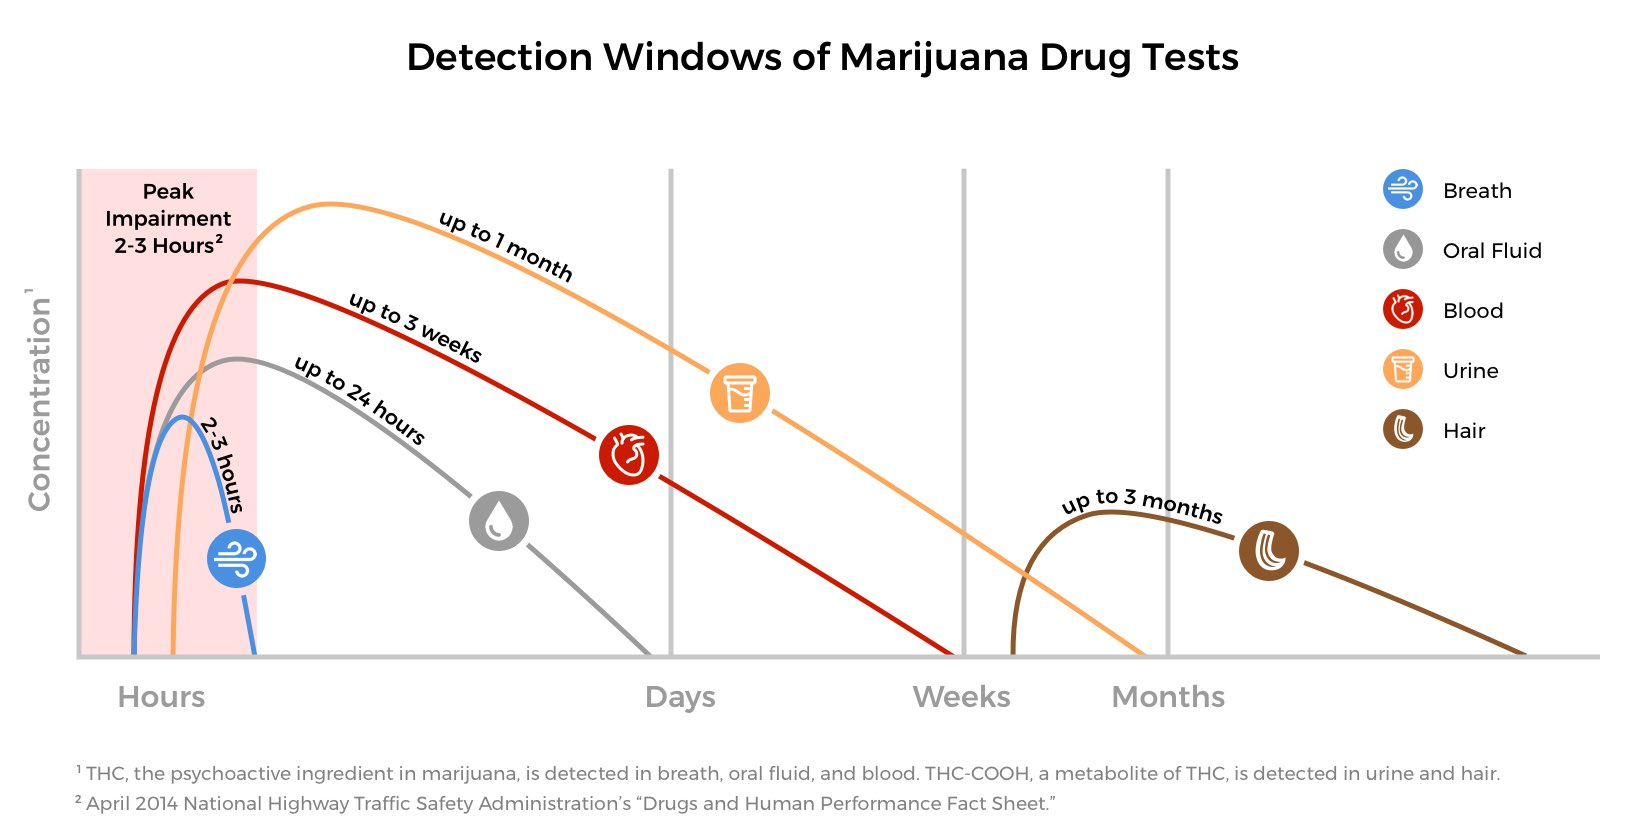 Drug Detection Times for Marijuana Depend on the Test | Hound Labs